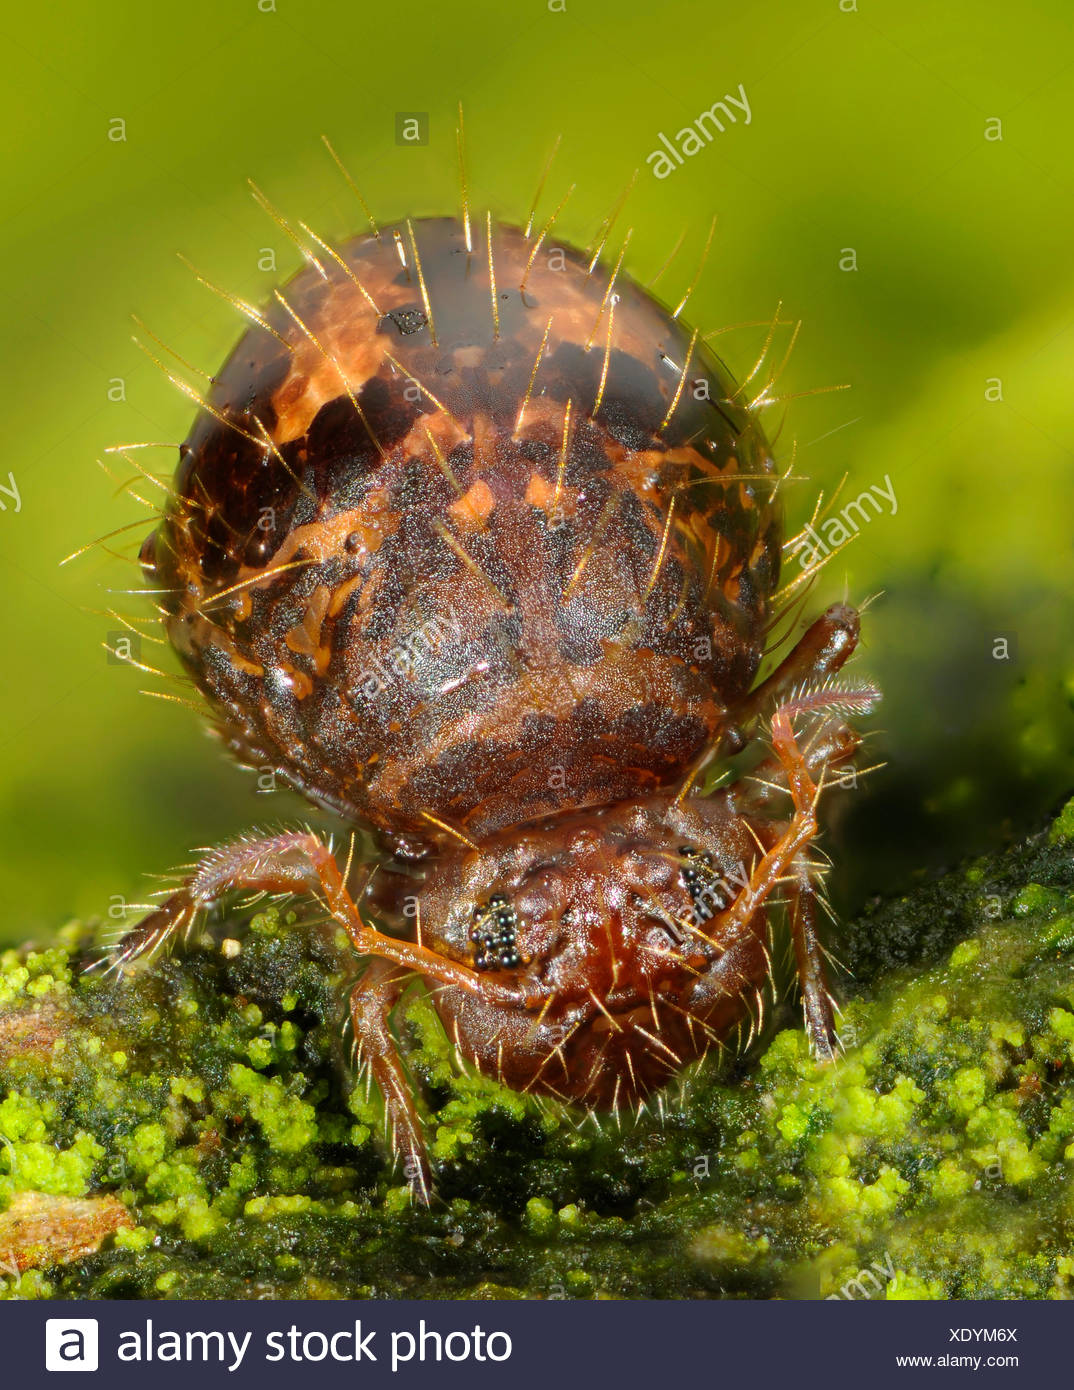 Springtail (Allacma fusca), front view, Germany - Stock Image